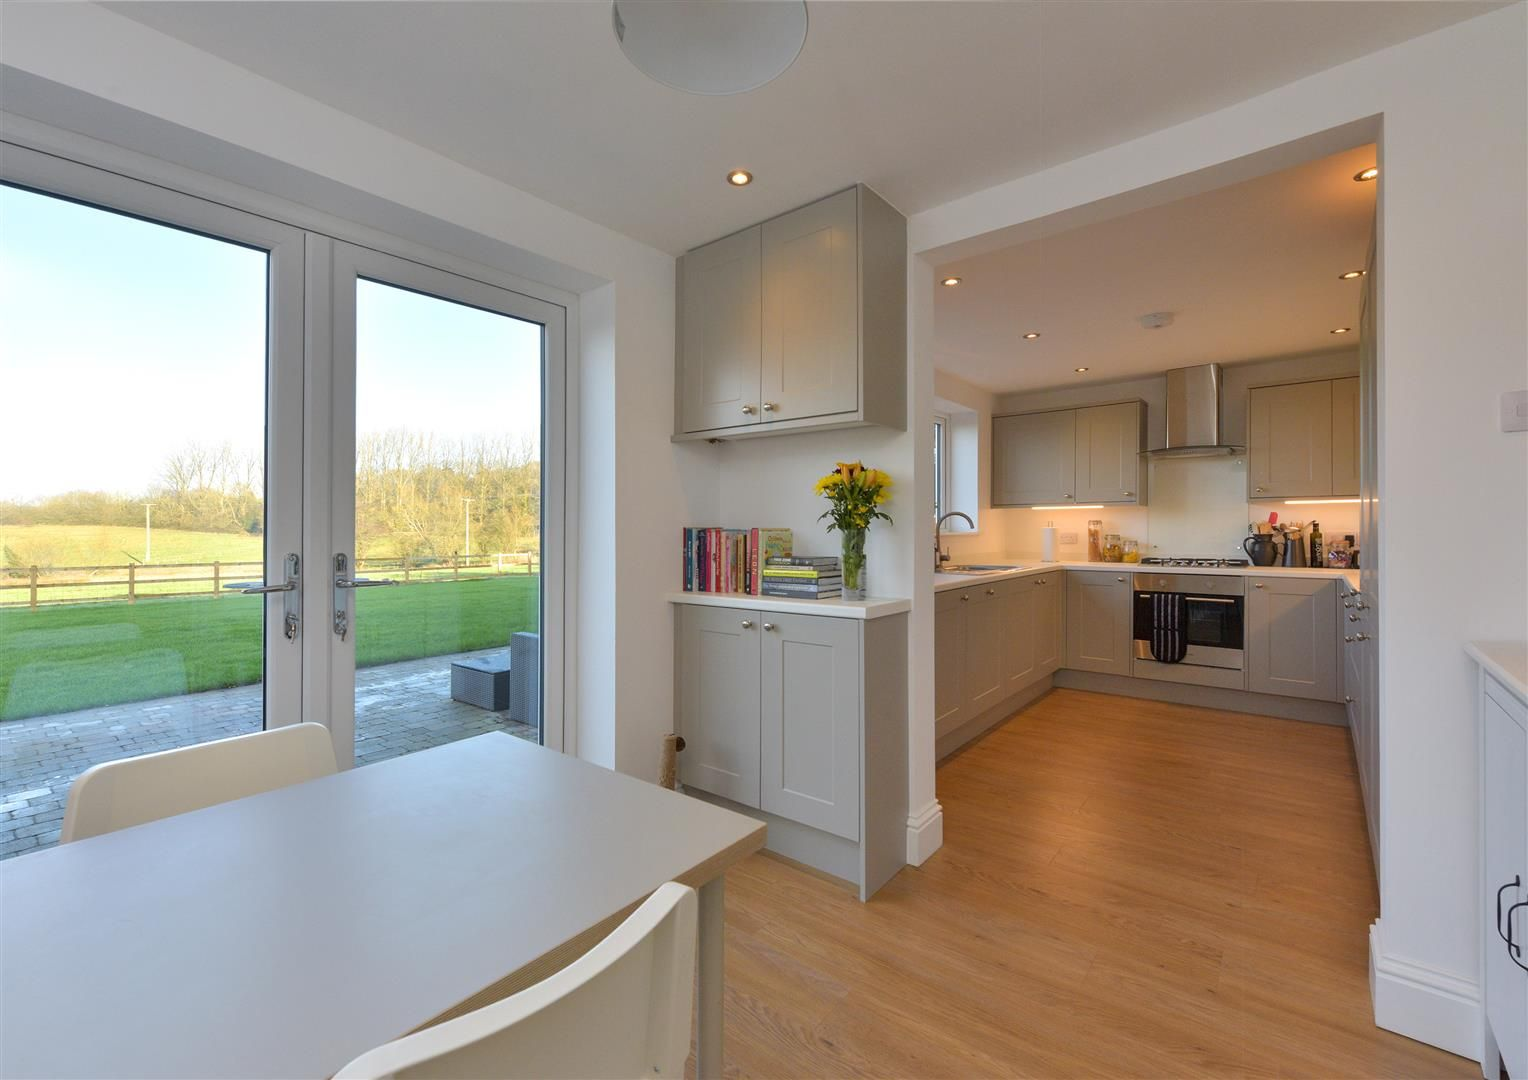 3 bed house for sale in Clent 6